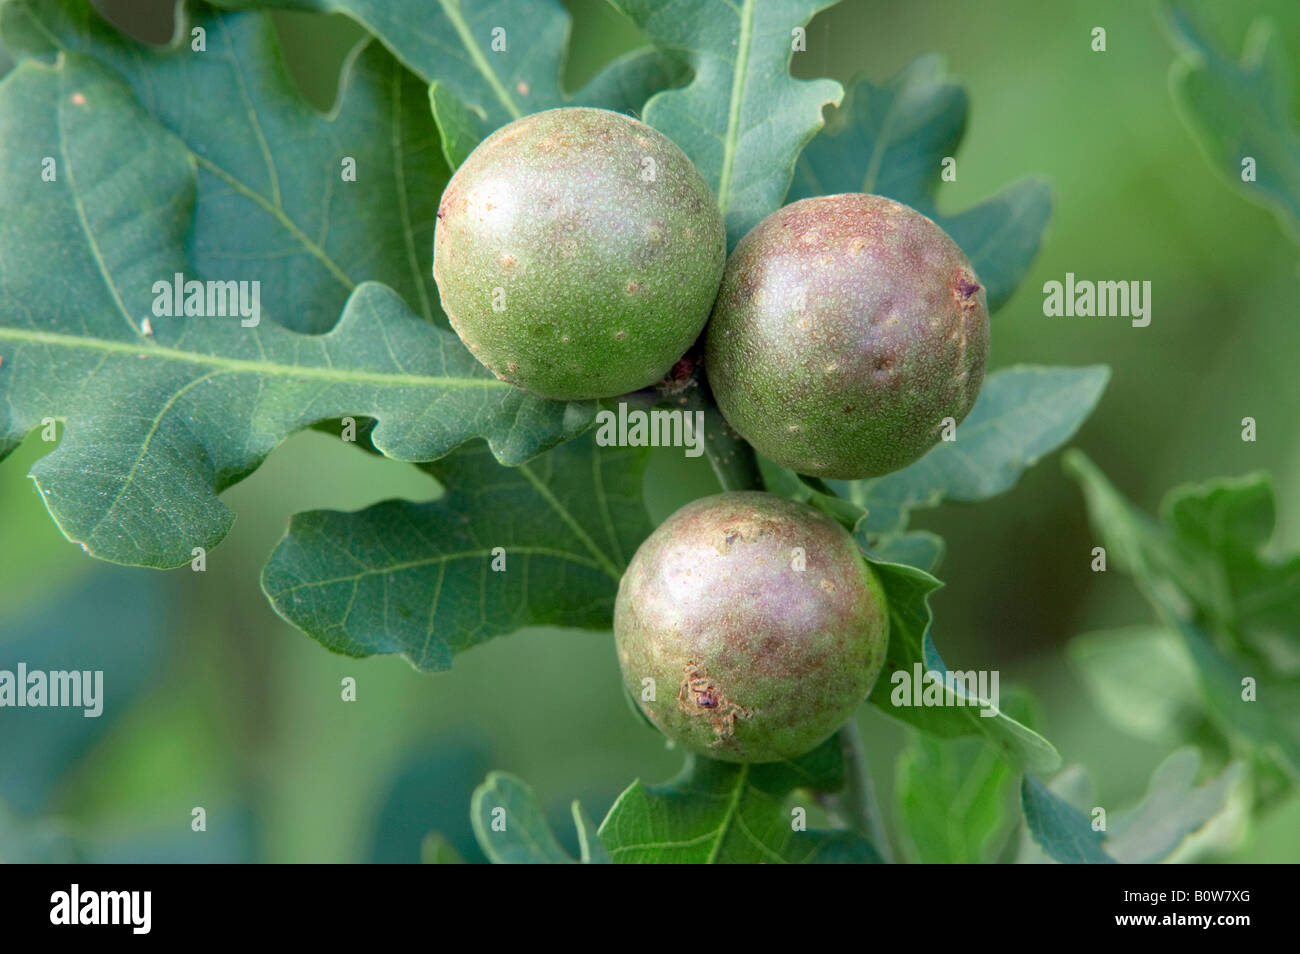 Attractive Oak Tree Fruit Part - 7: Gall On An Oak Tree (Quercus), Outgrowth Caused By A Gall Wasp Or Gallfly  (Cynips Quercusfolii), North Rhine-Westphalia, German